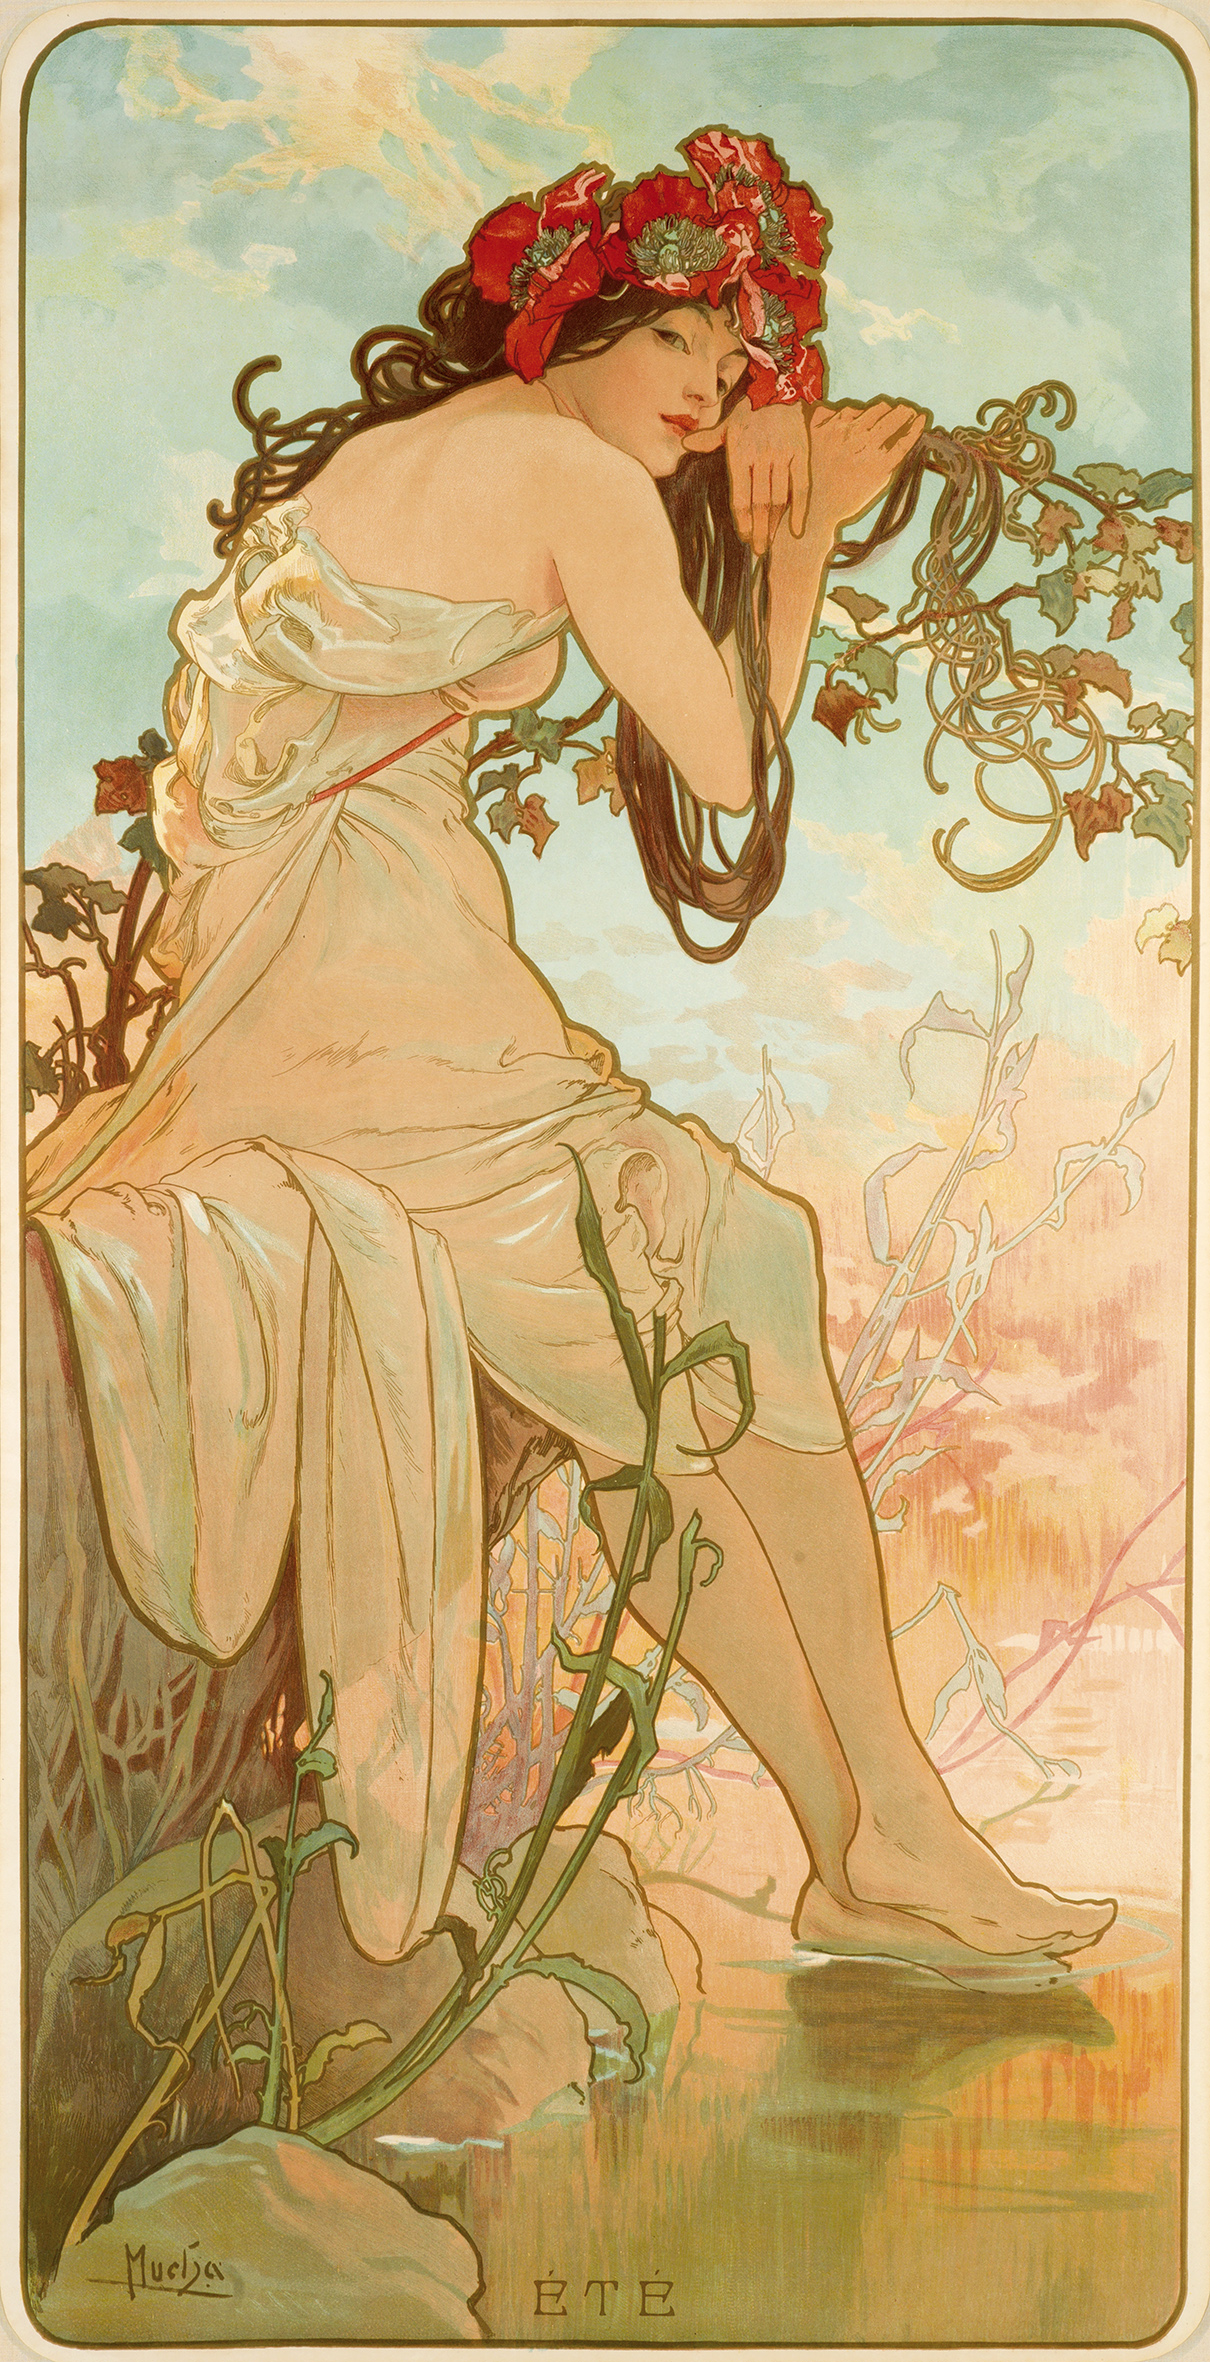 illustrational poster of a woman sitting on lakeside amongst flowers